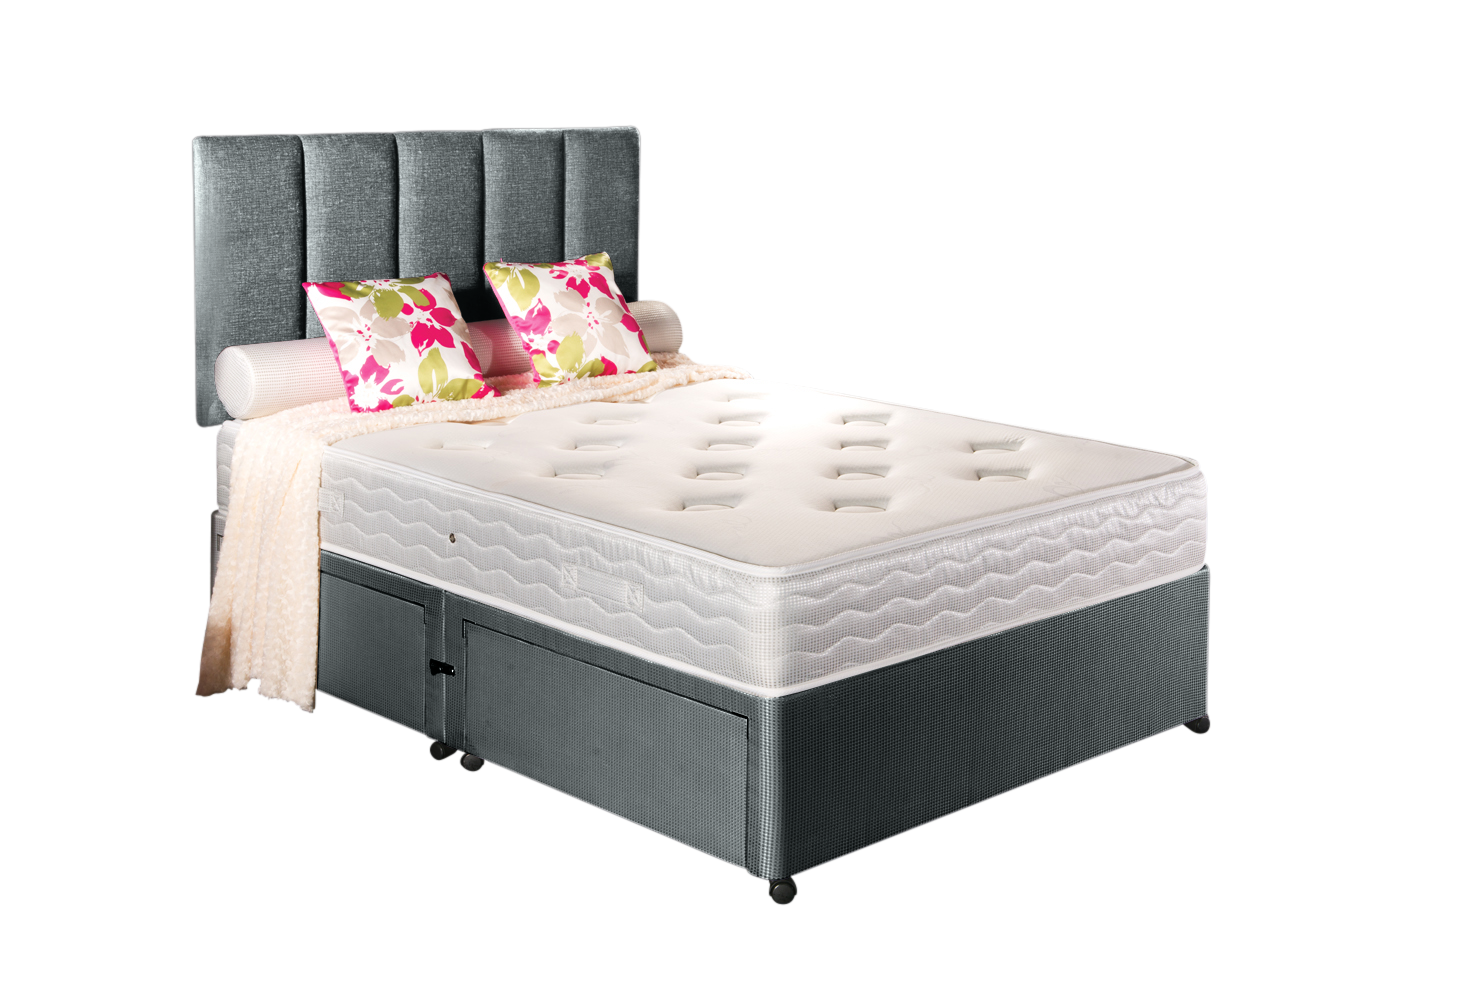 Buy cheap create a king compare beds prices for best uk for Cheap double divan bed and mattress